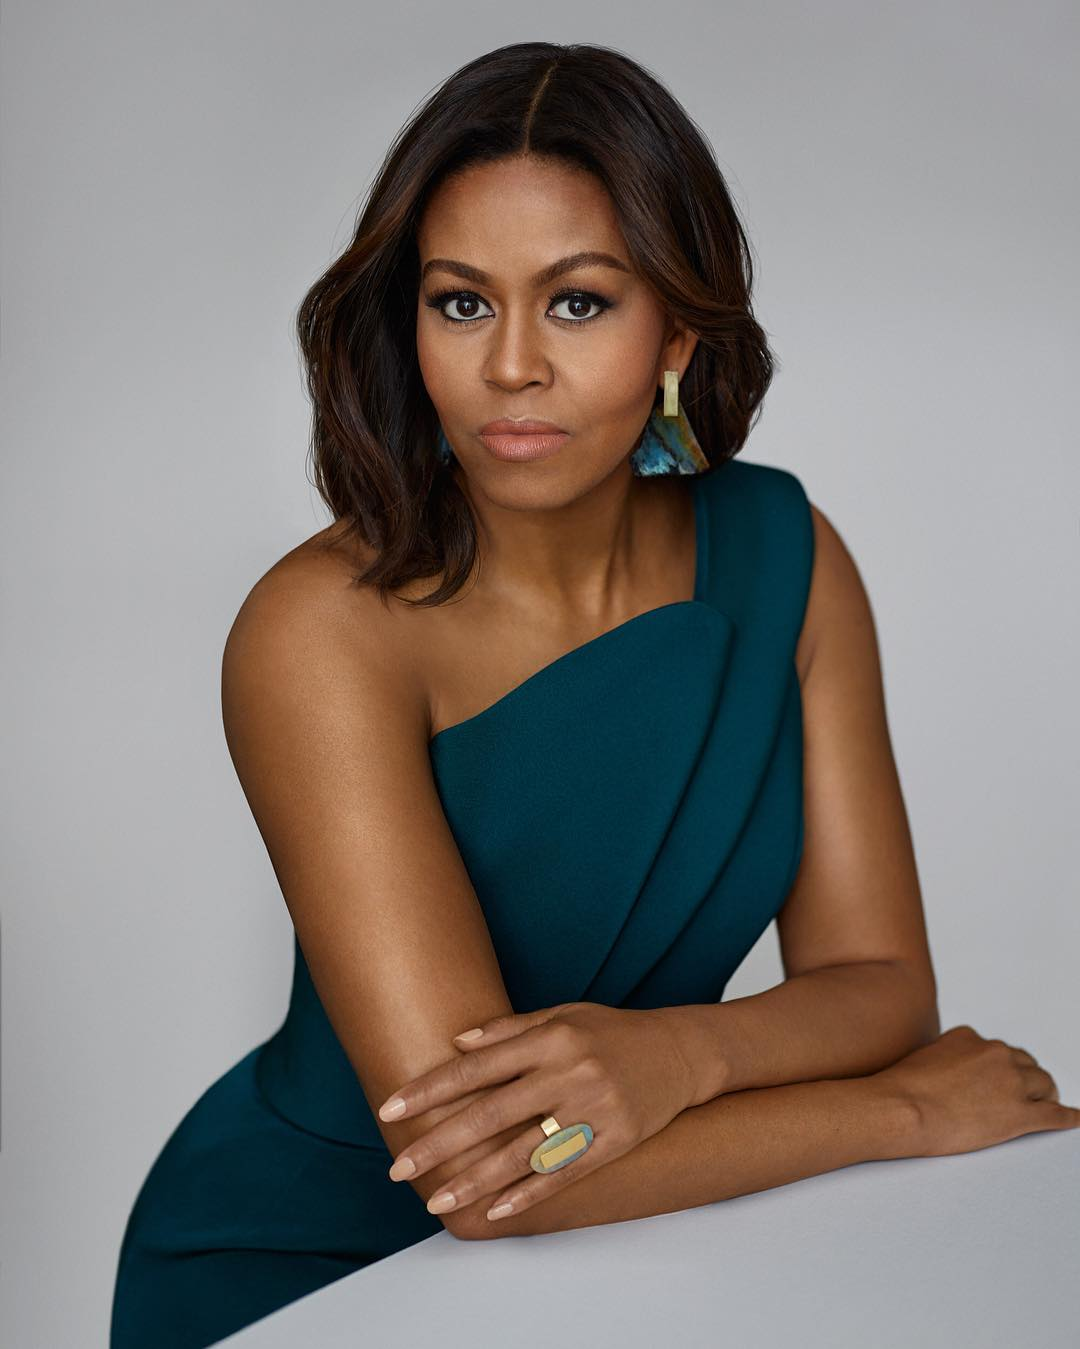 Image result for michelle obama essence magazine